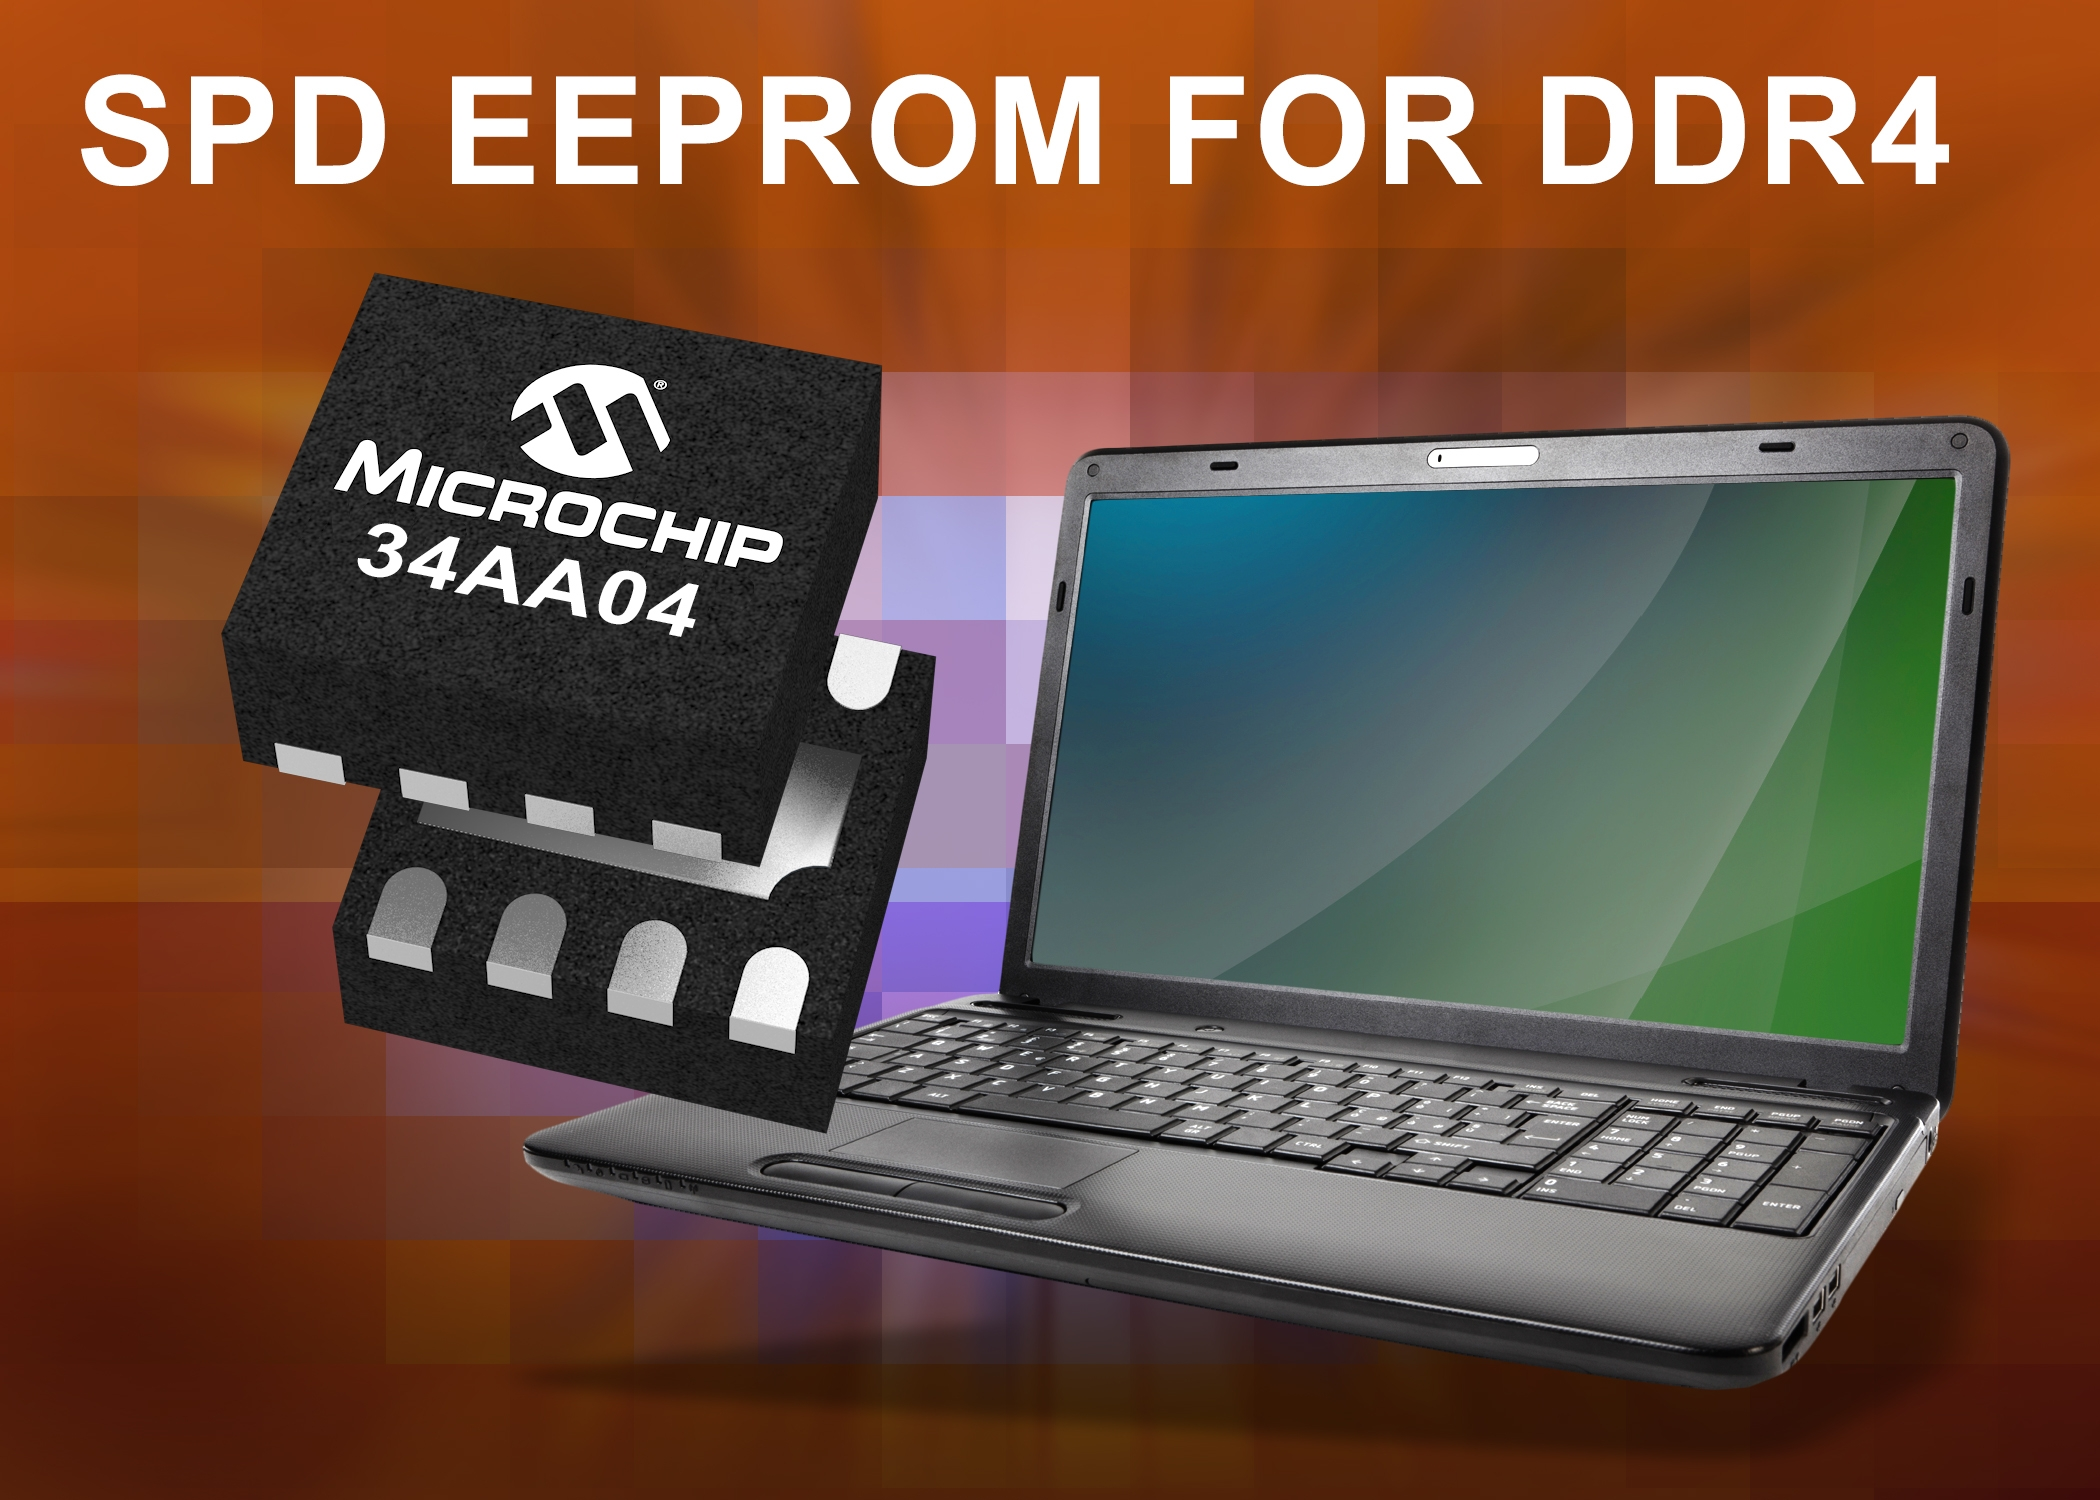 Microchip unveils 4Kb Serial Presence Detect EEPROM  for DDR4 SDRAM modules